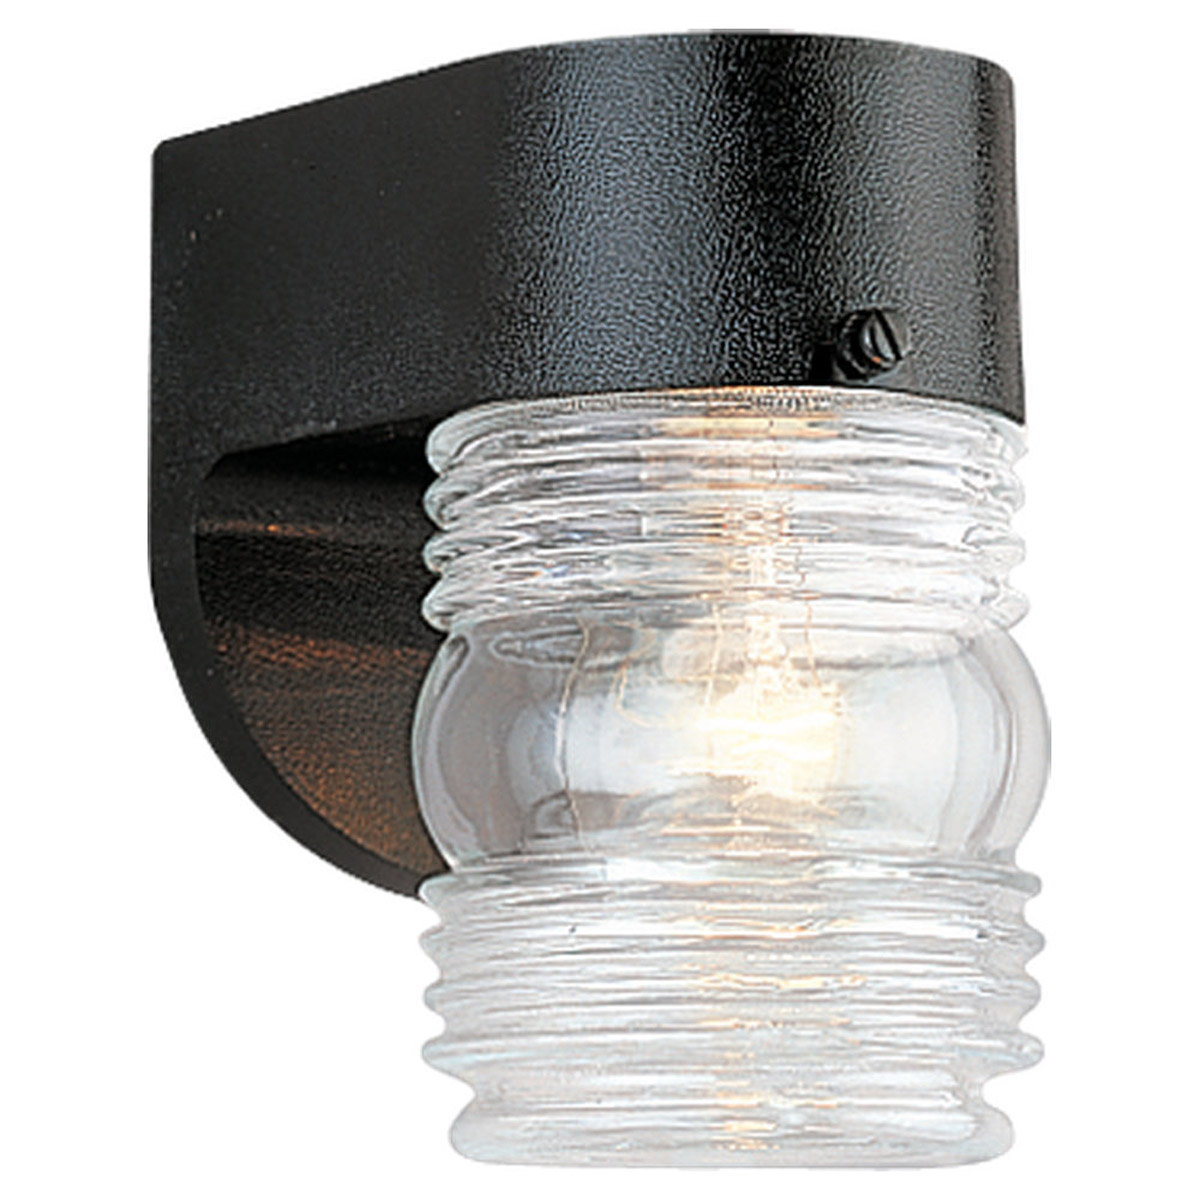 Sea Gull Lighting Signature 1 Light Outdoor Wall Lantern in Black 8750-12 photo